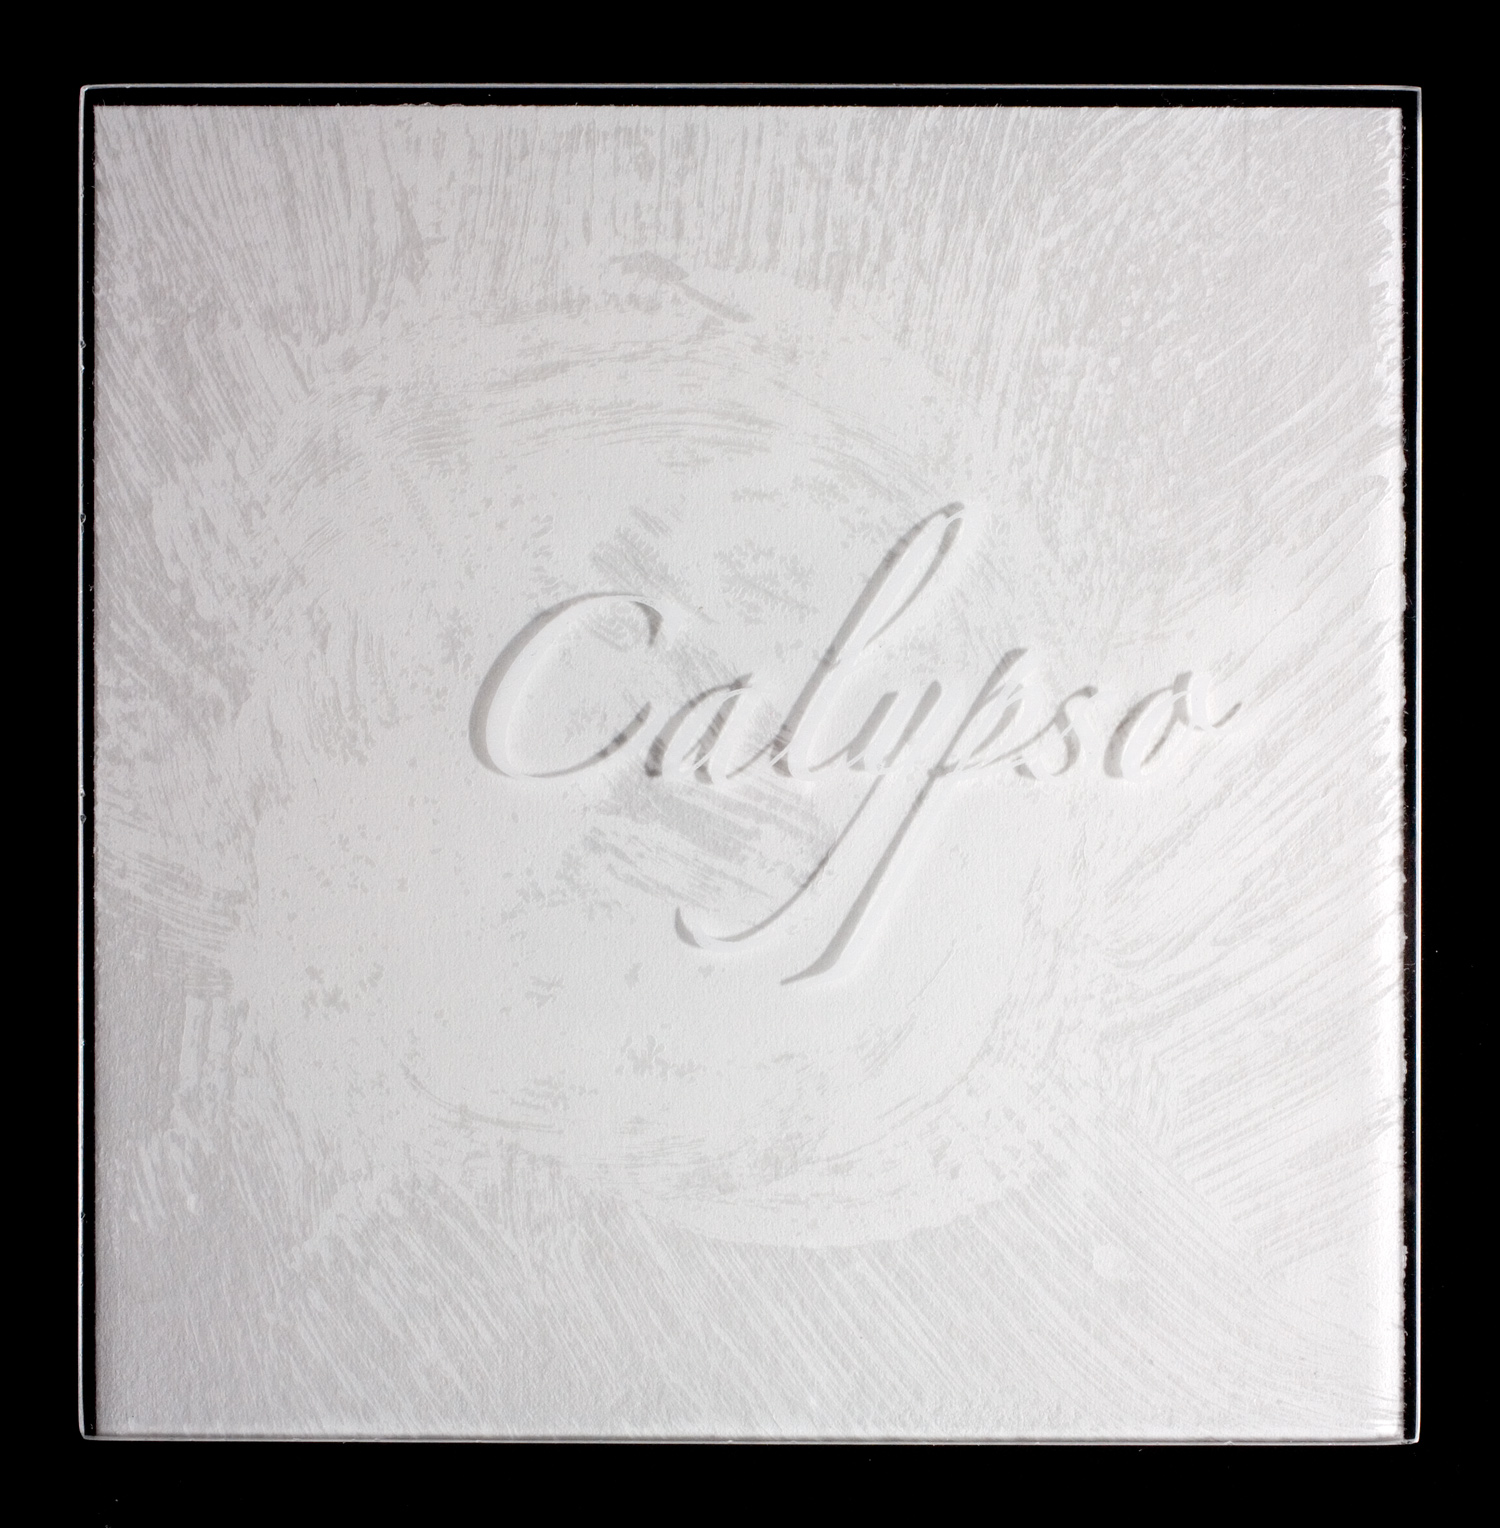 Plexi cover printed in white ink over white paper, the title is legible only by the shadow it casts.